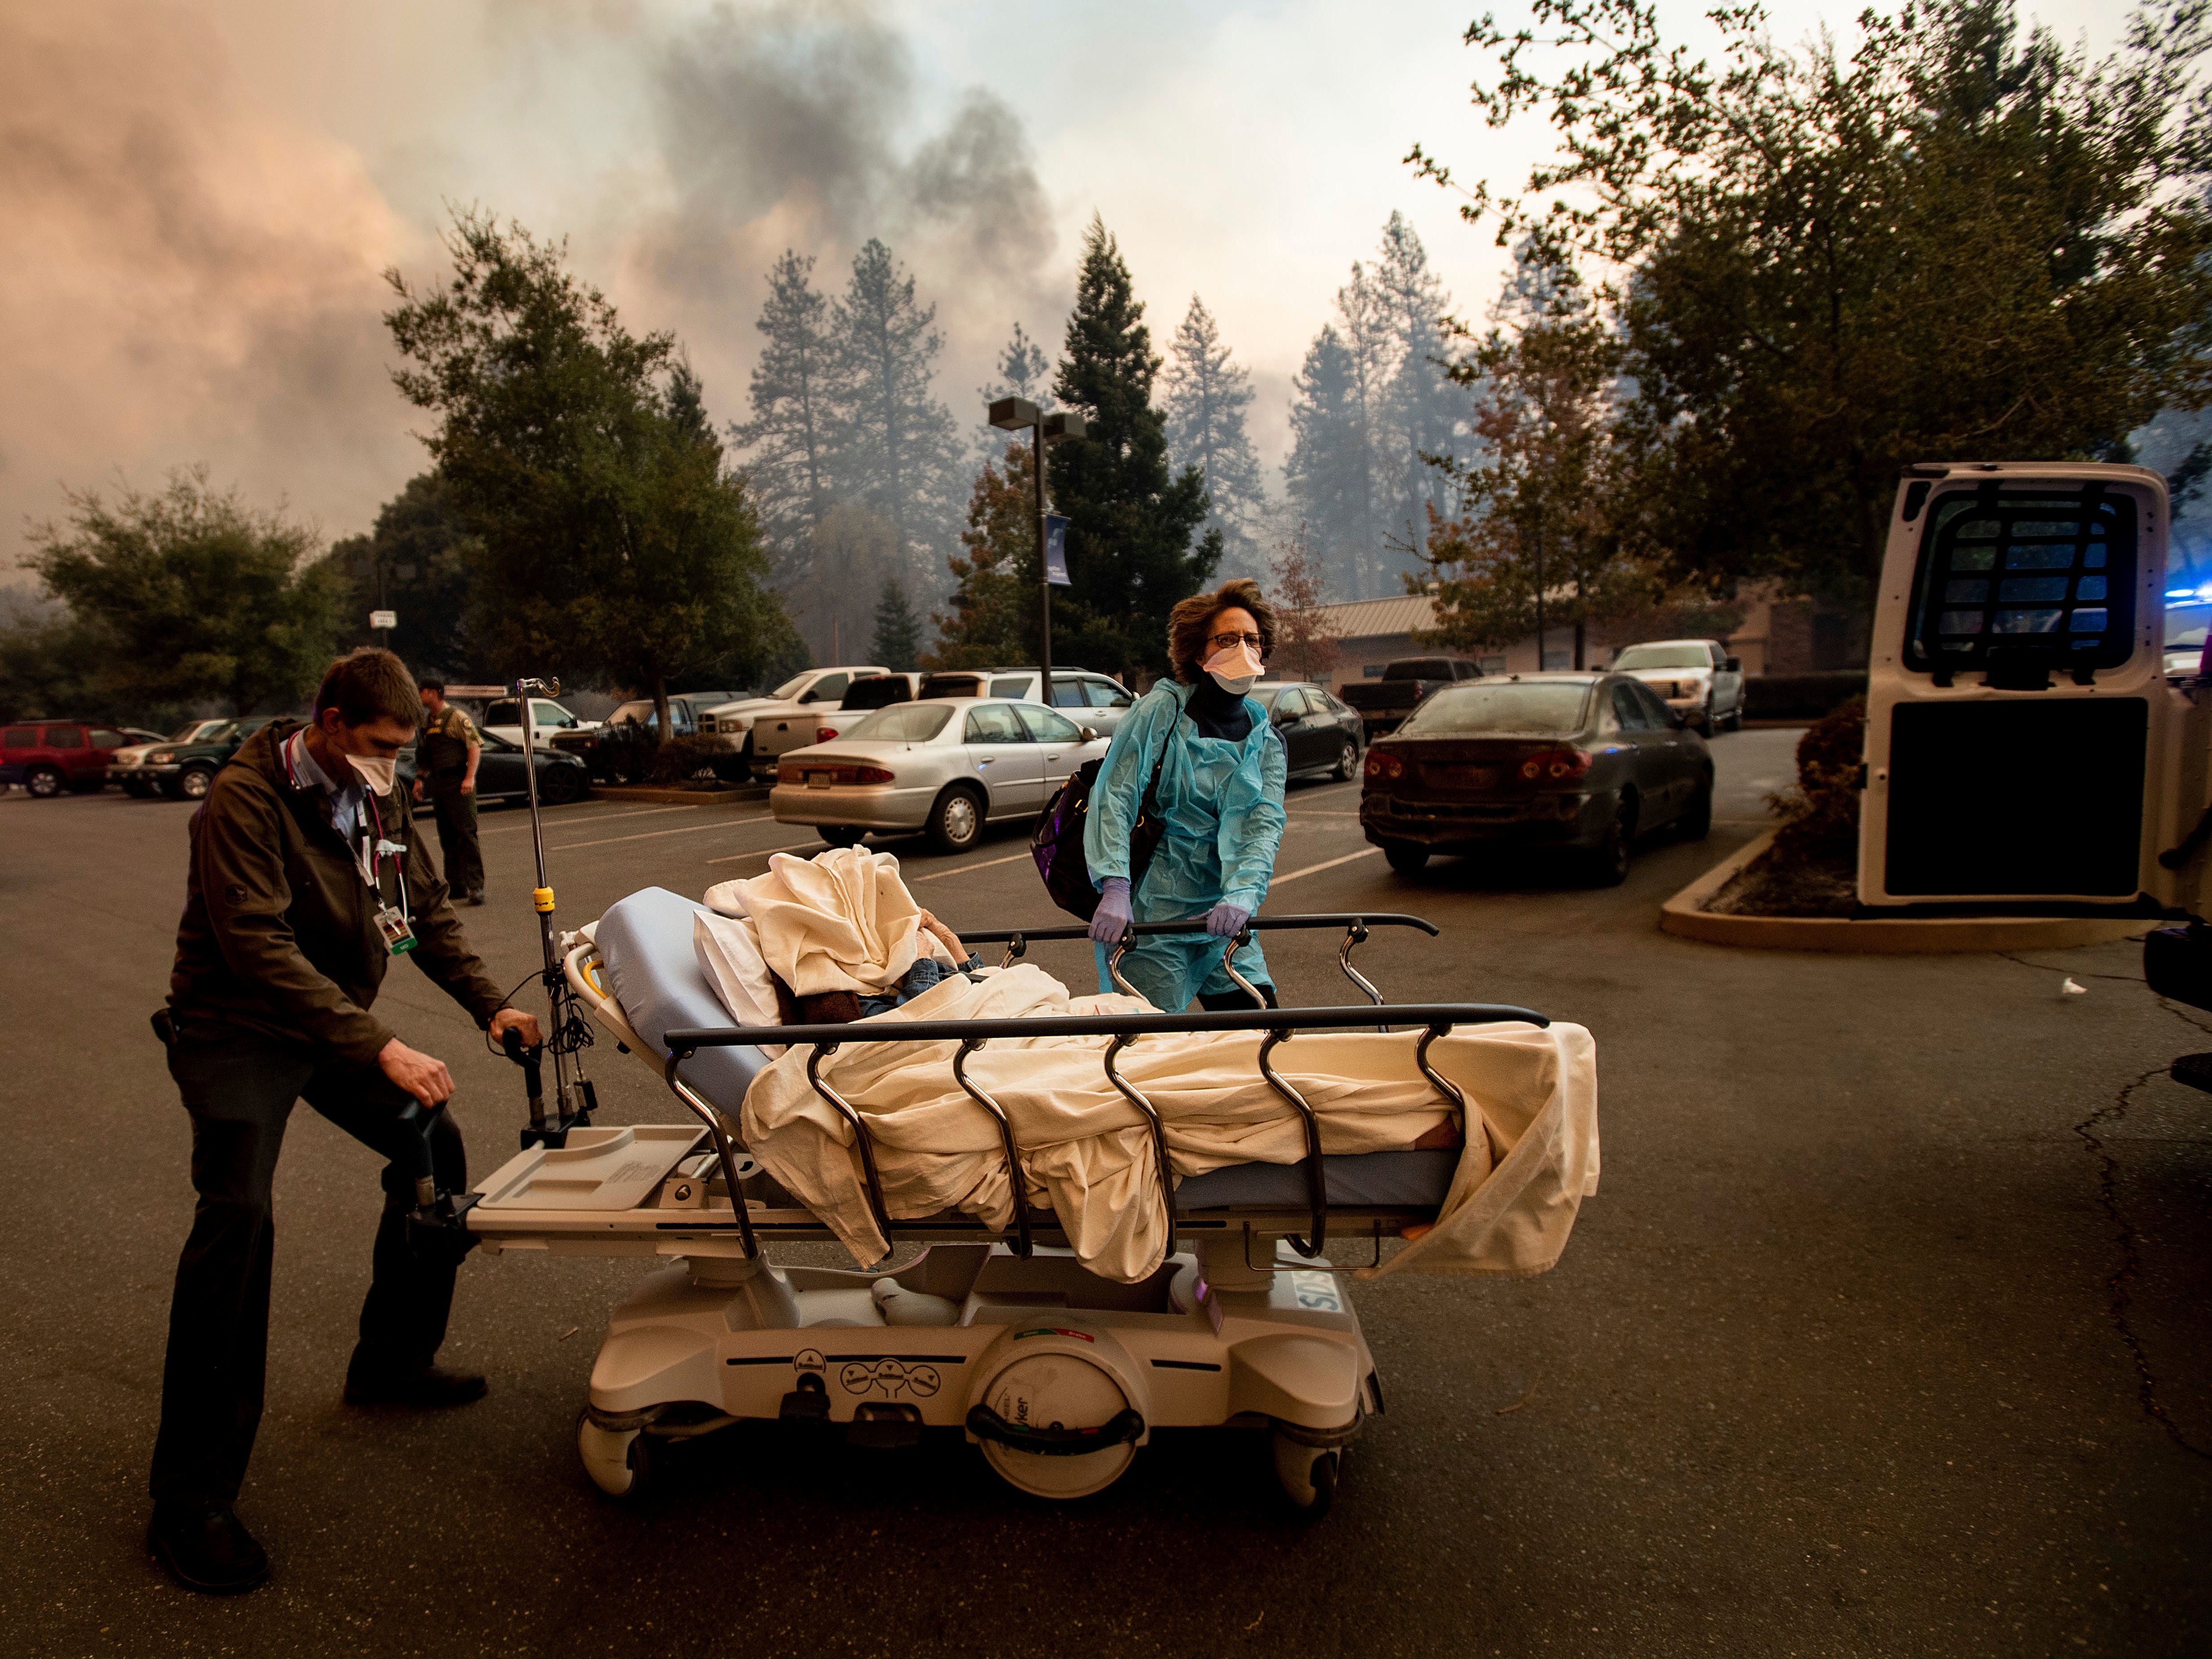 Medical personnel evacuate patients as the Feather River Hospital burns while the Camp Fire rages through Paradise, Calif., on Nov. 8, 2018.